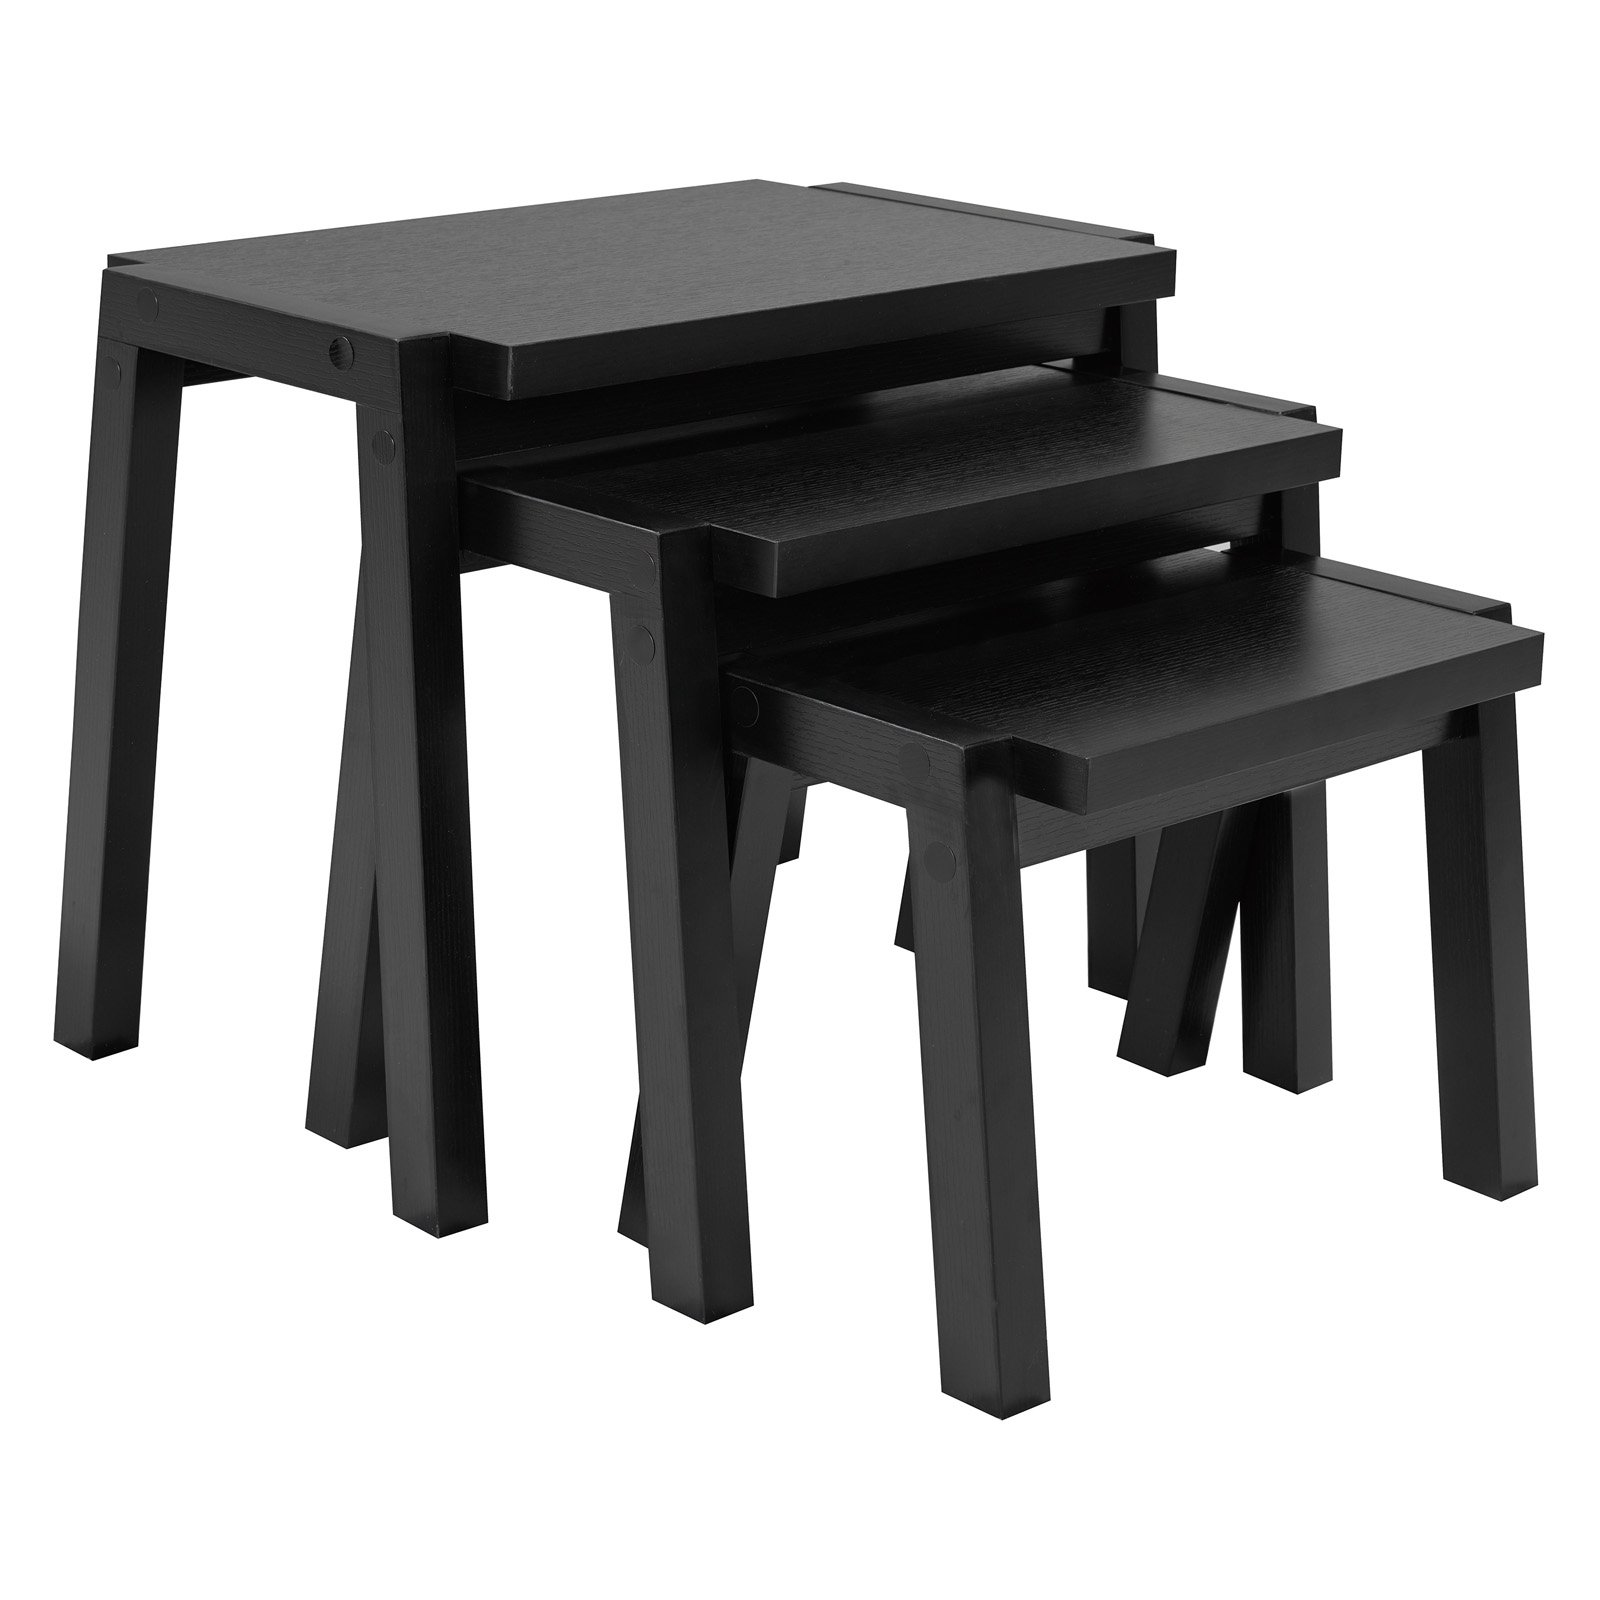 Brassex Inc. Nesting Tables - Set of 3